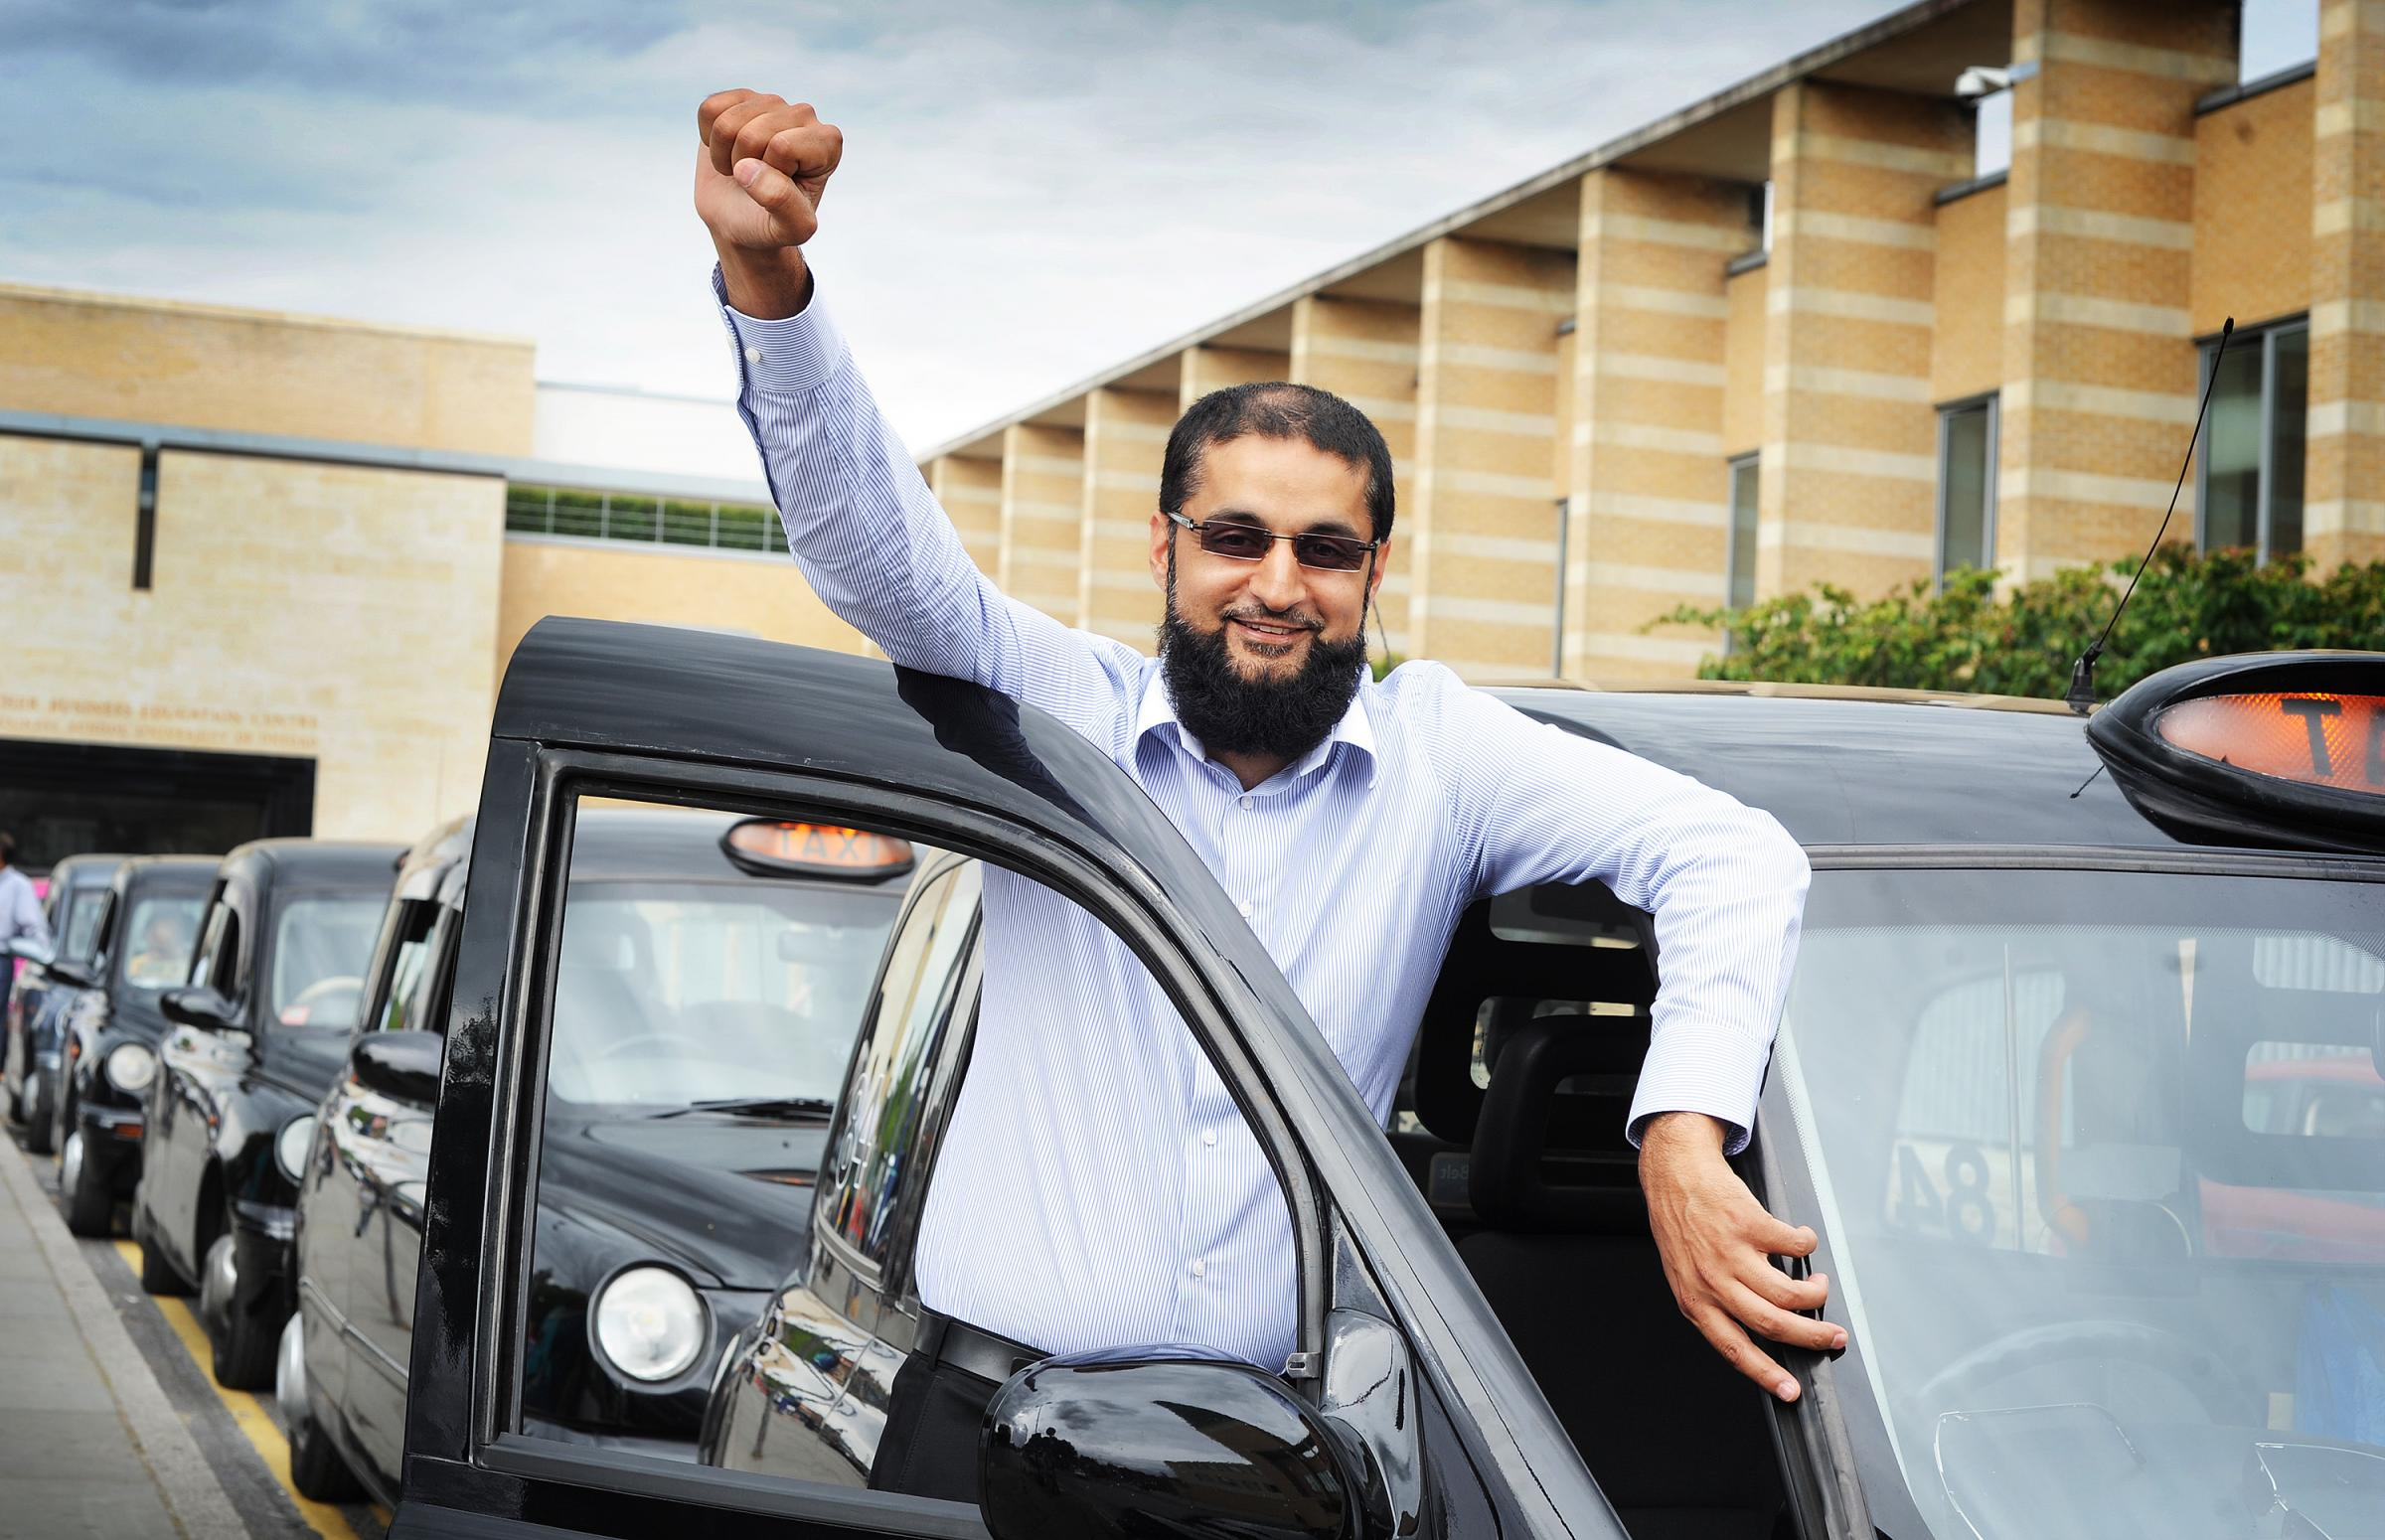 Sajad Khan, secretary of COLTA- the City of Oxford Licenced Taxicab Association. Pic: Jon Lewis